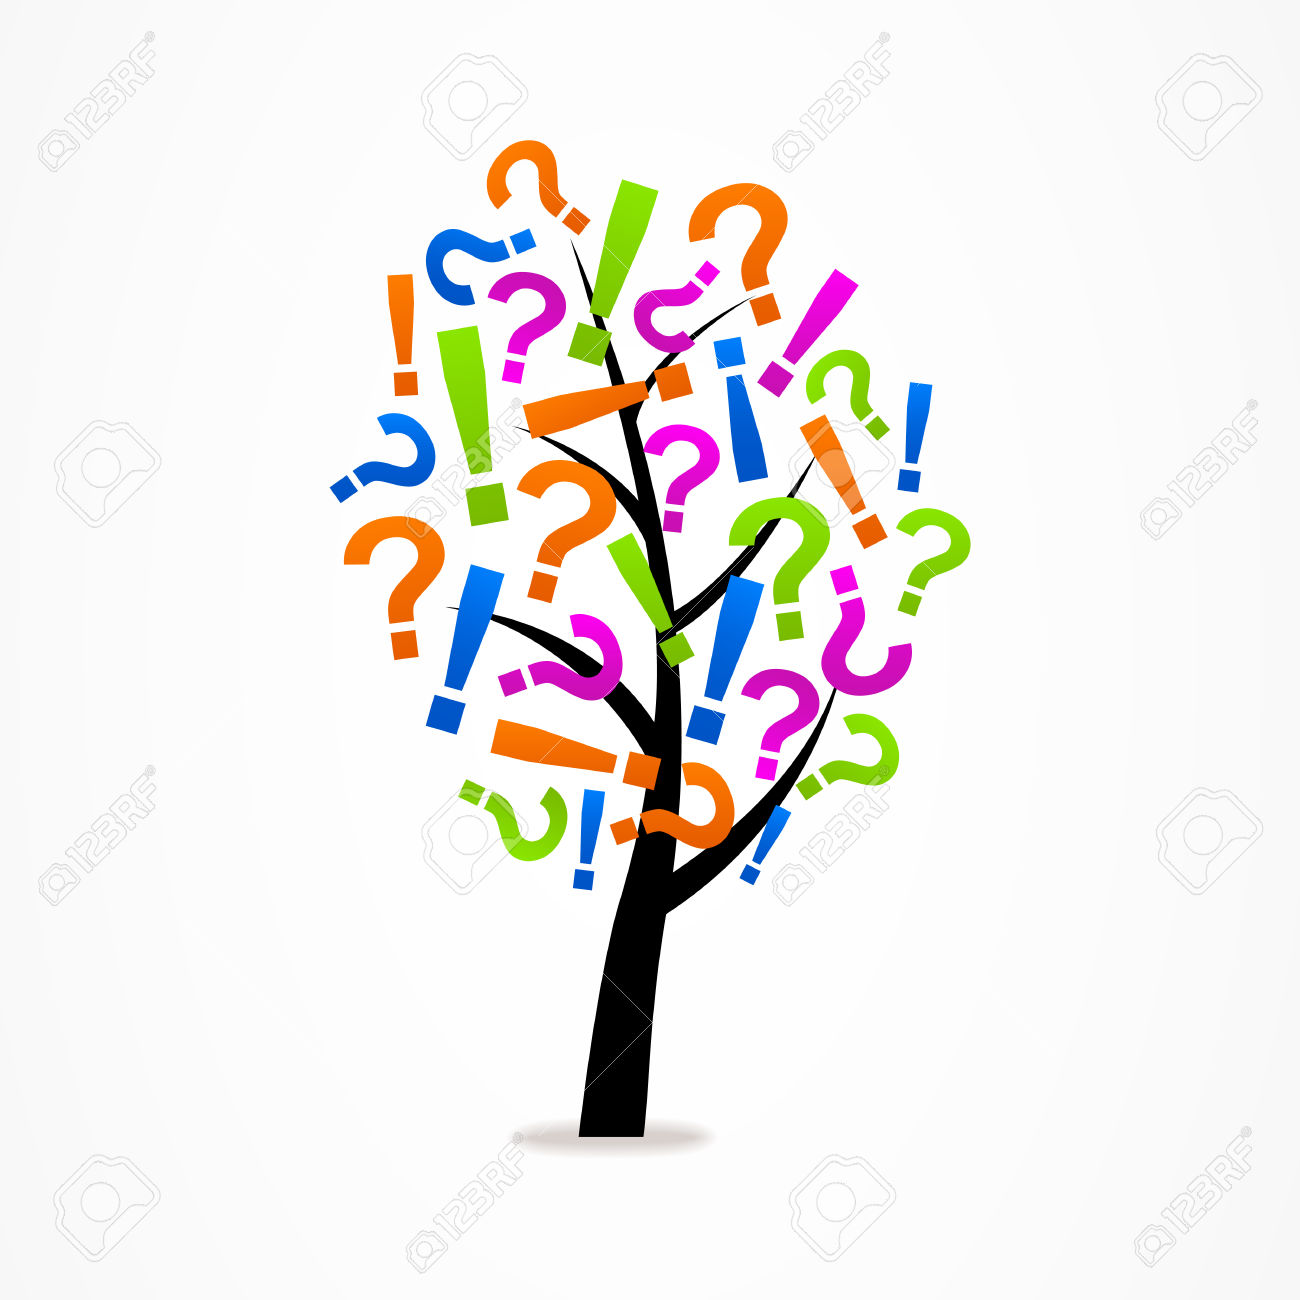 tree question mark clipart